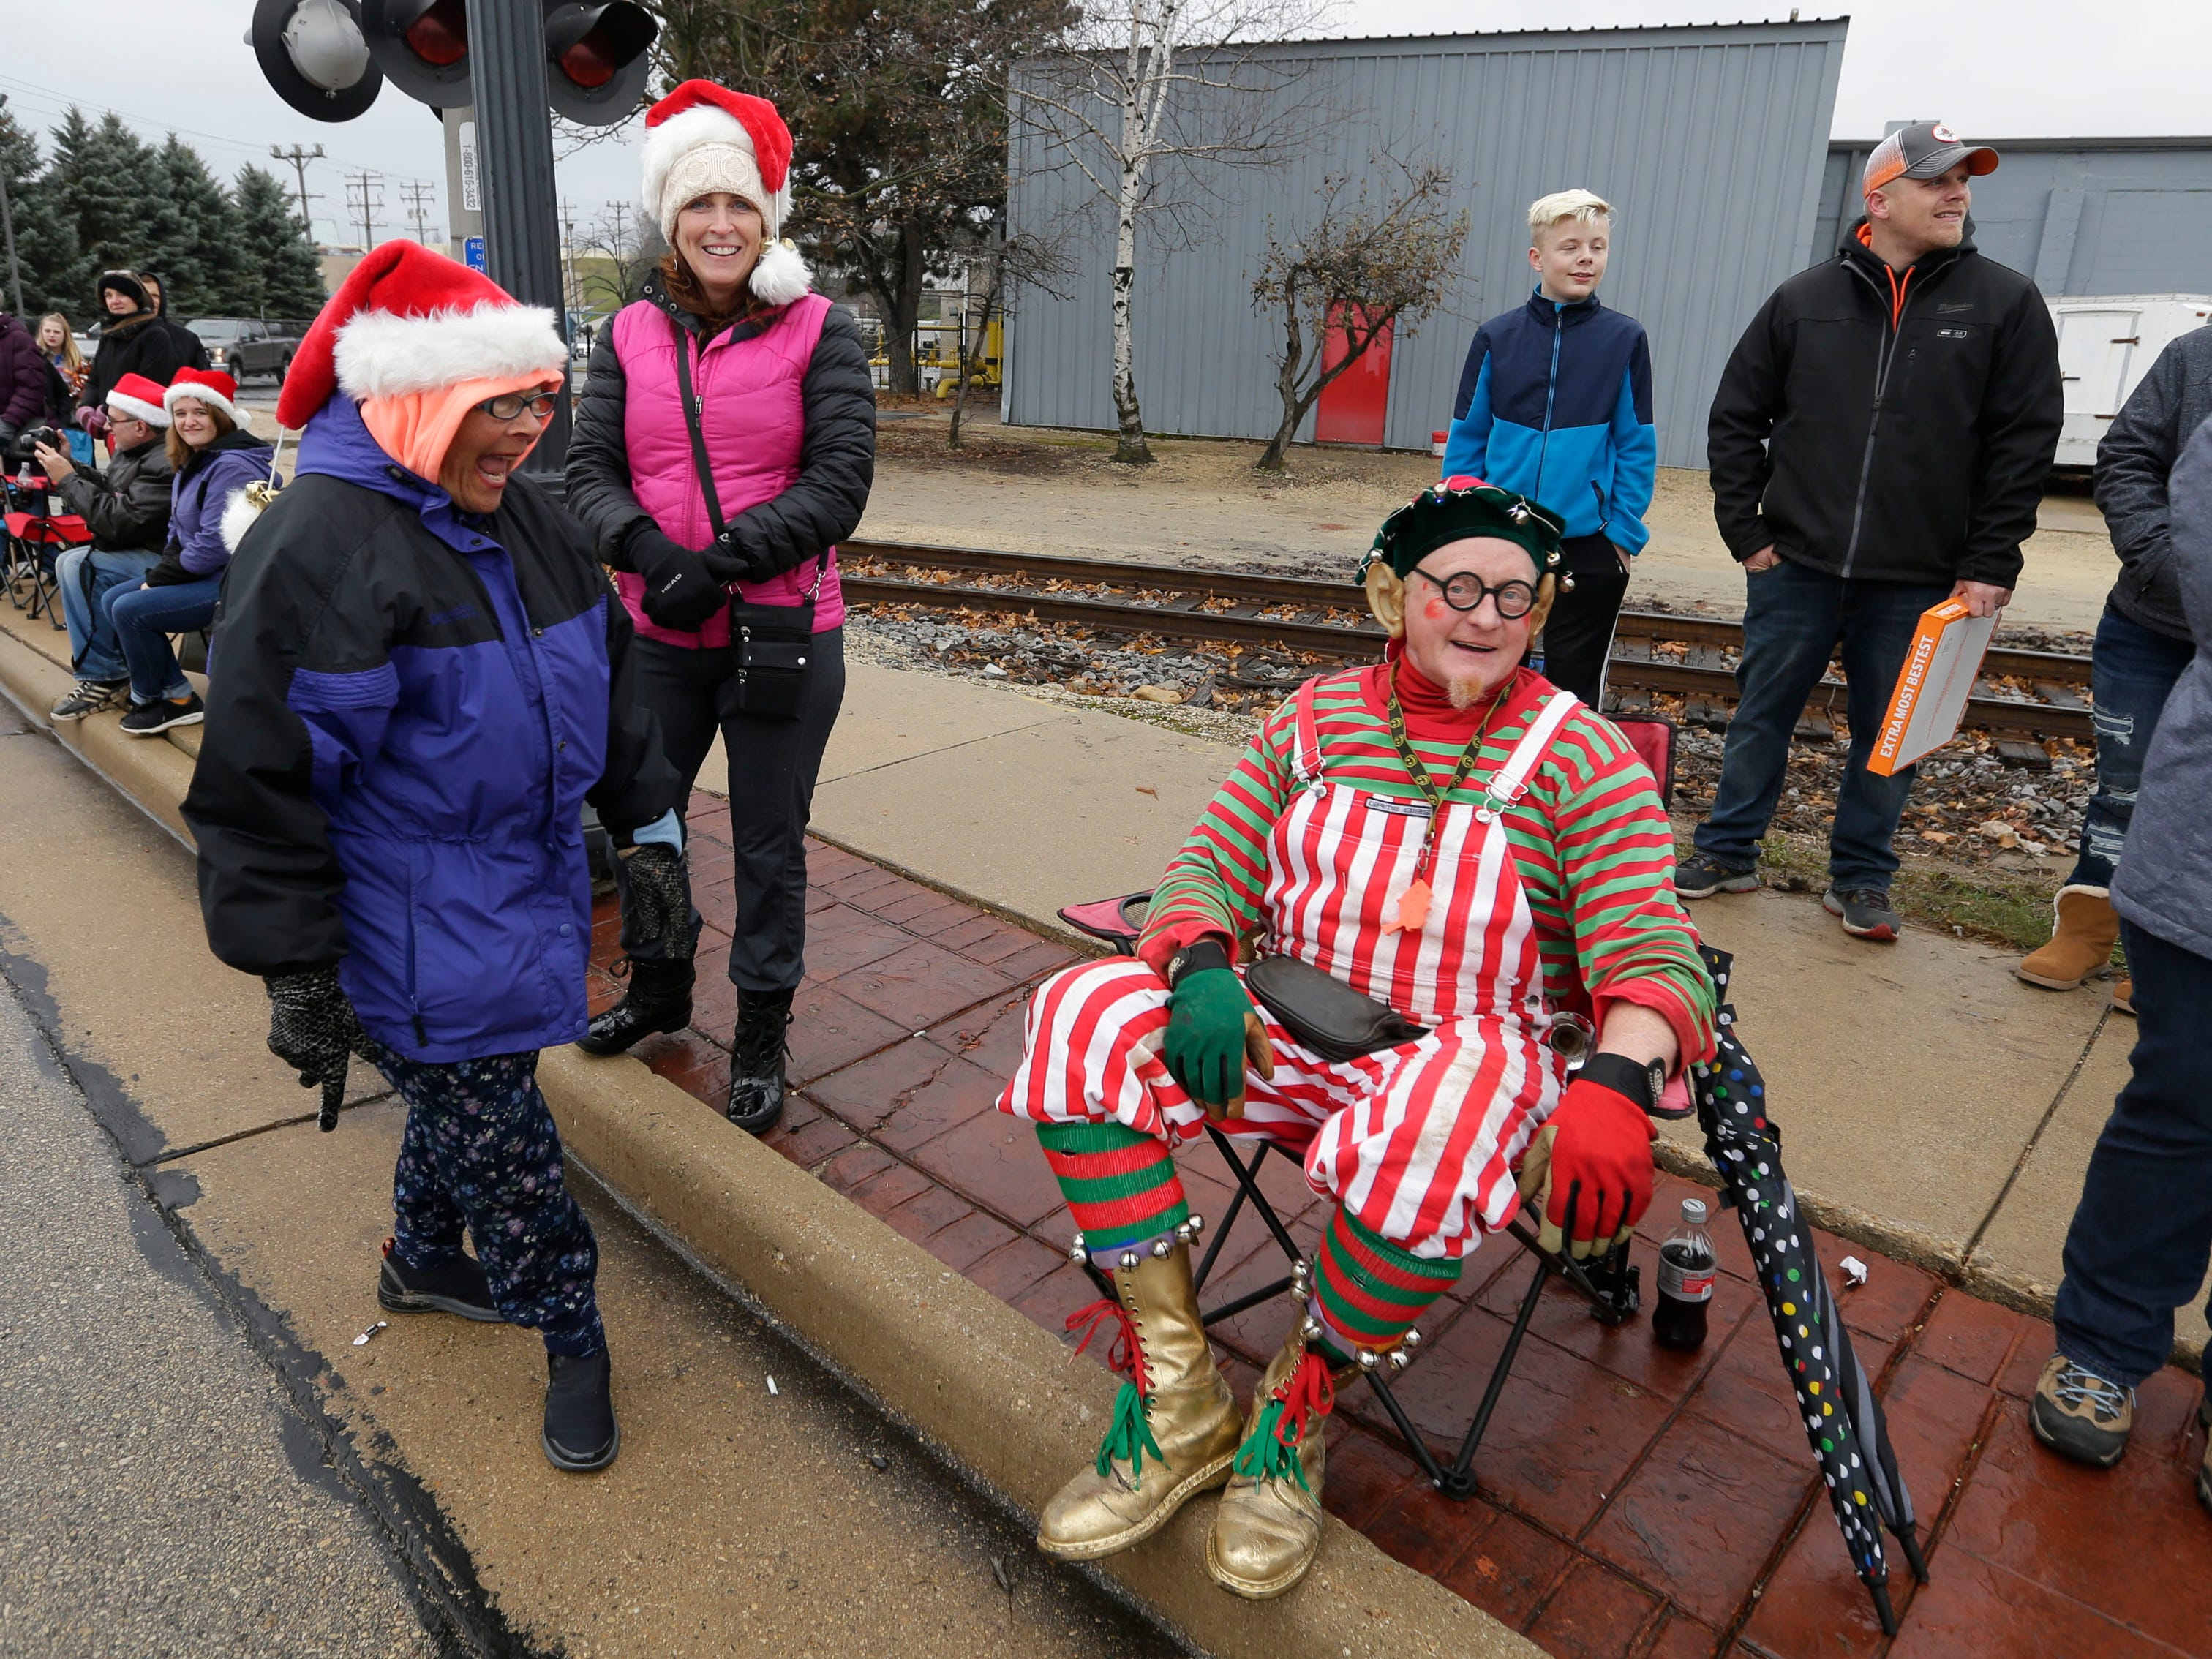 While his wheel slowly rolls past him, Rob Summerbell  teases the crowd by sitting down before continuing his performance in the Grafton Christmas Parade.